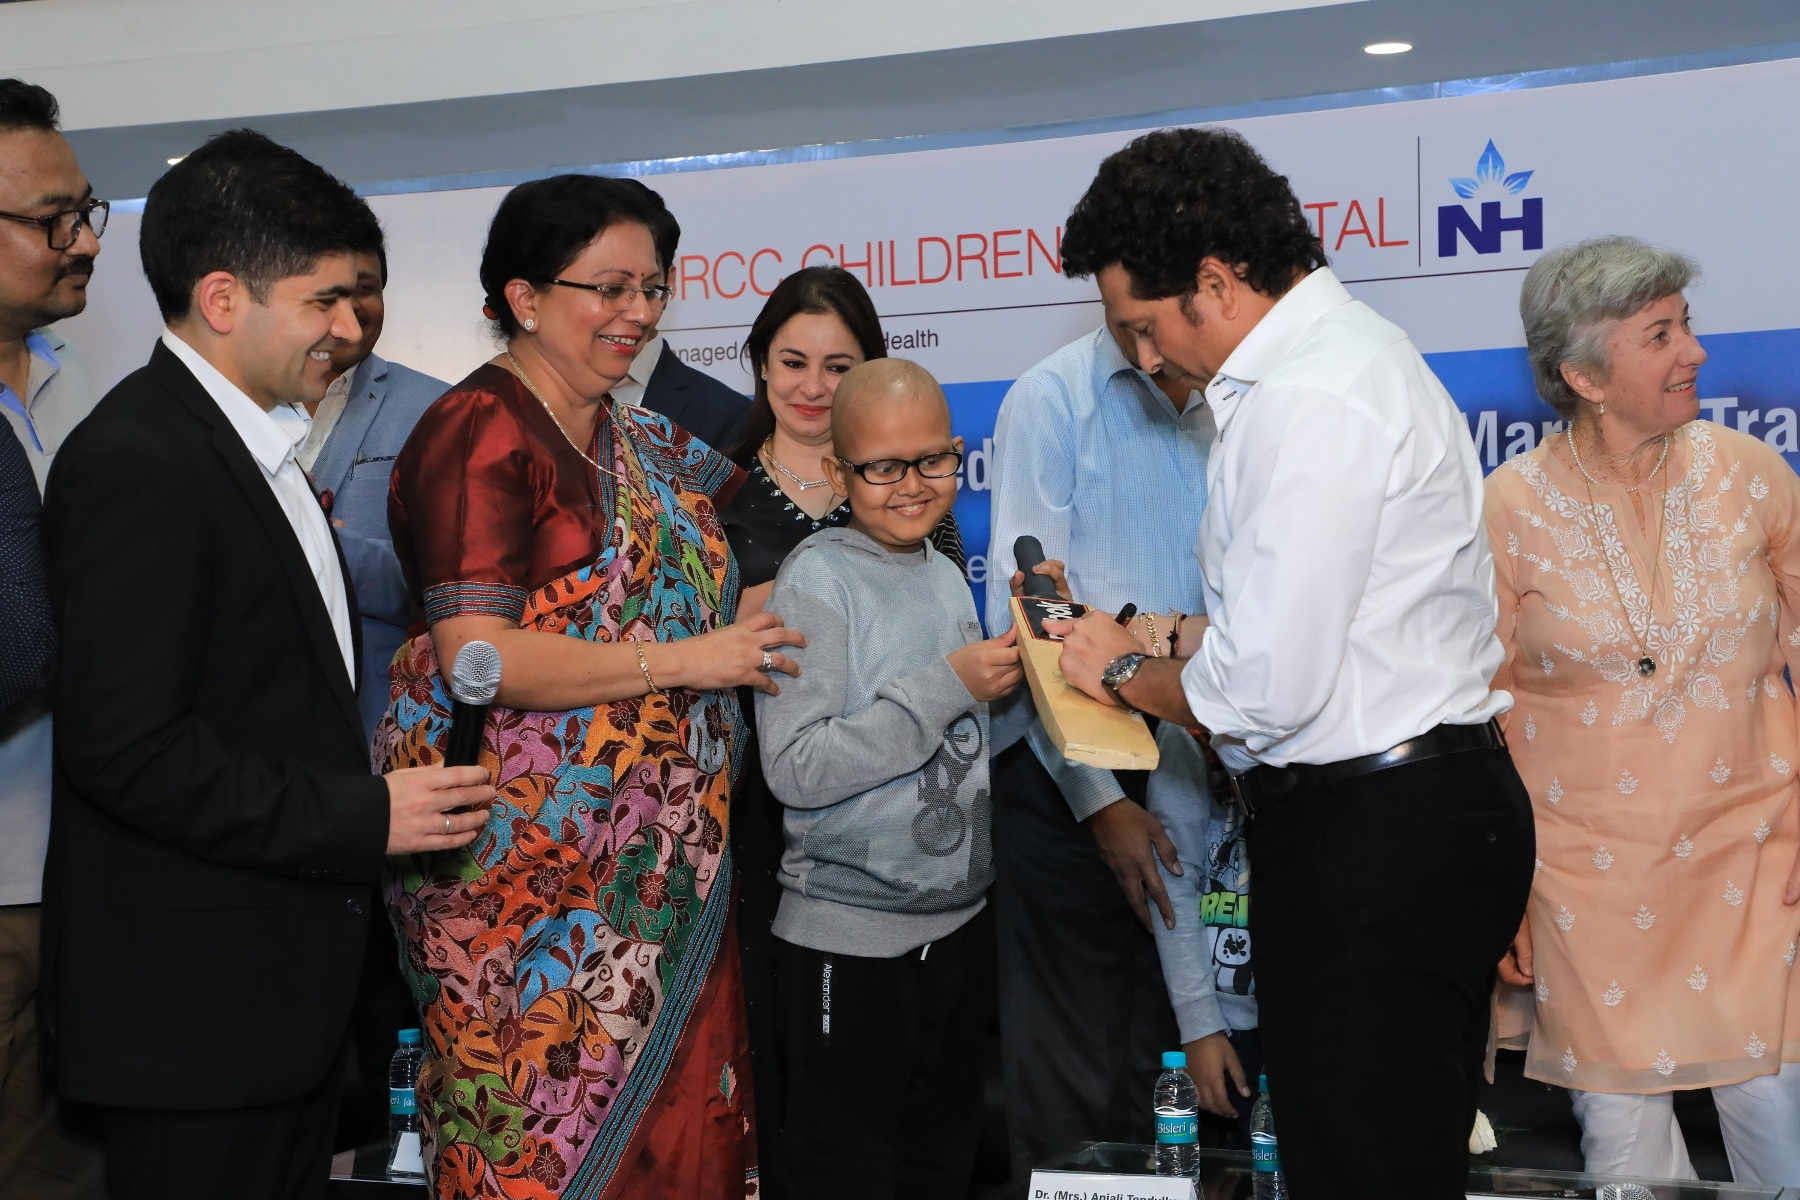 Sachin Tendulkar launches Bone Marrow Transplant Services at Narayana Managed SRCC Childrens Hospital